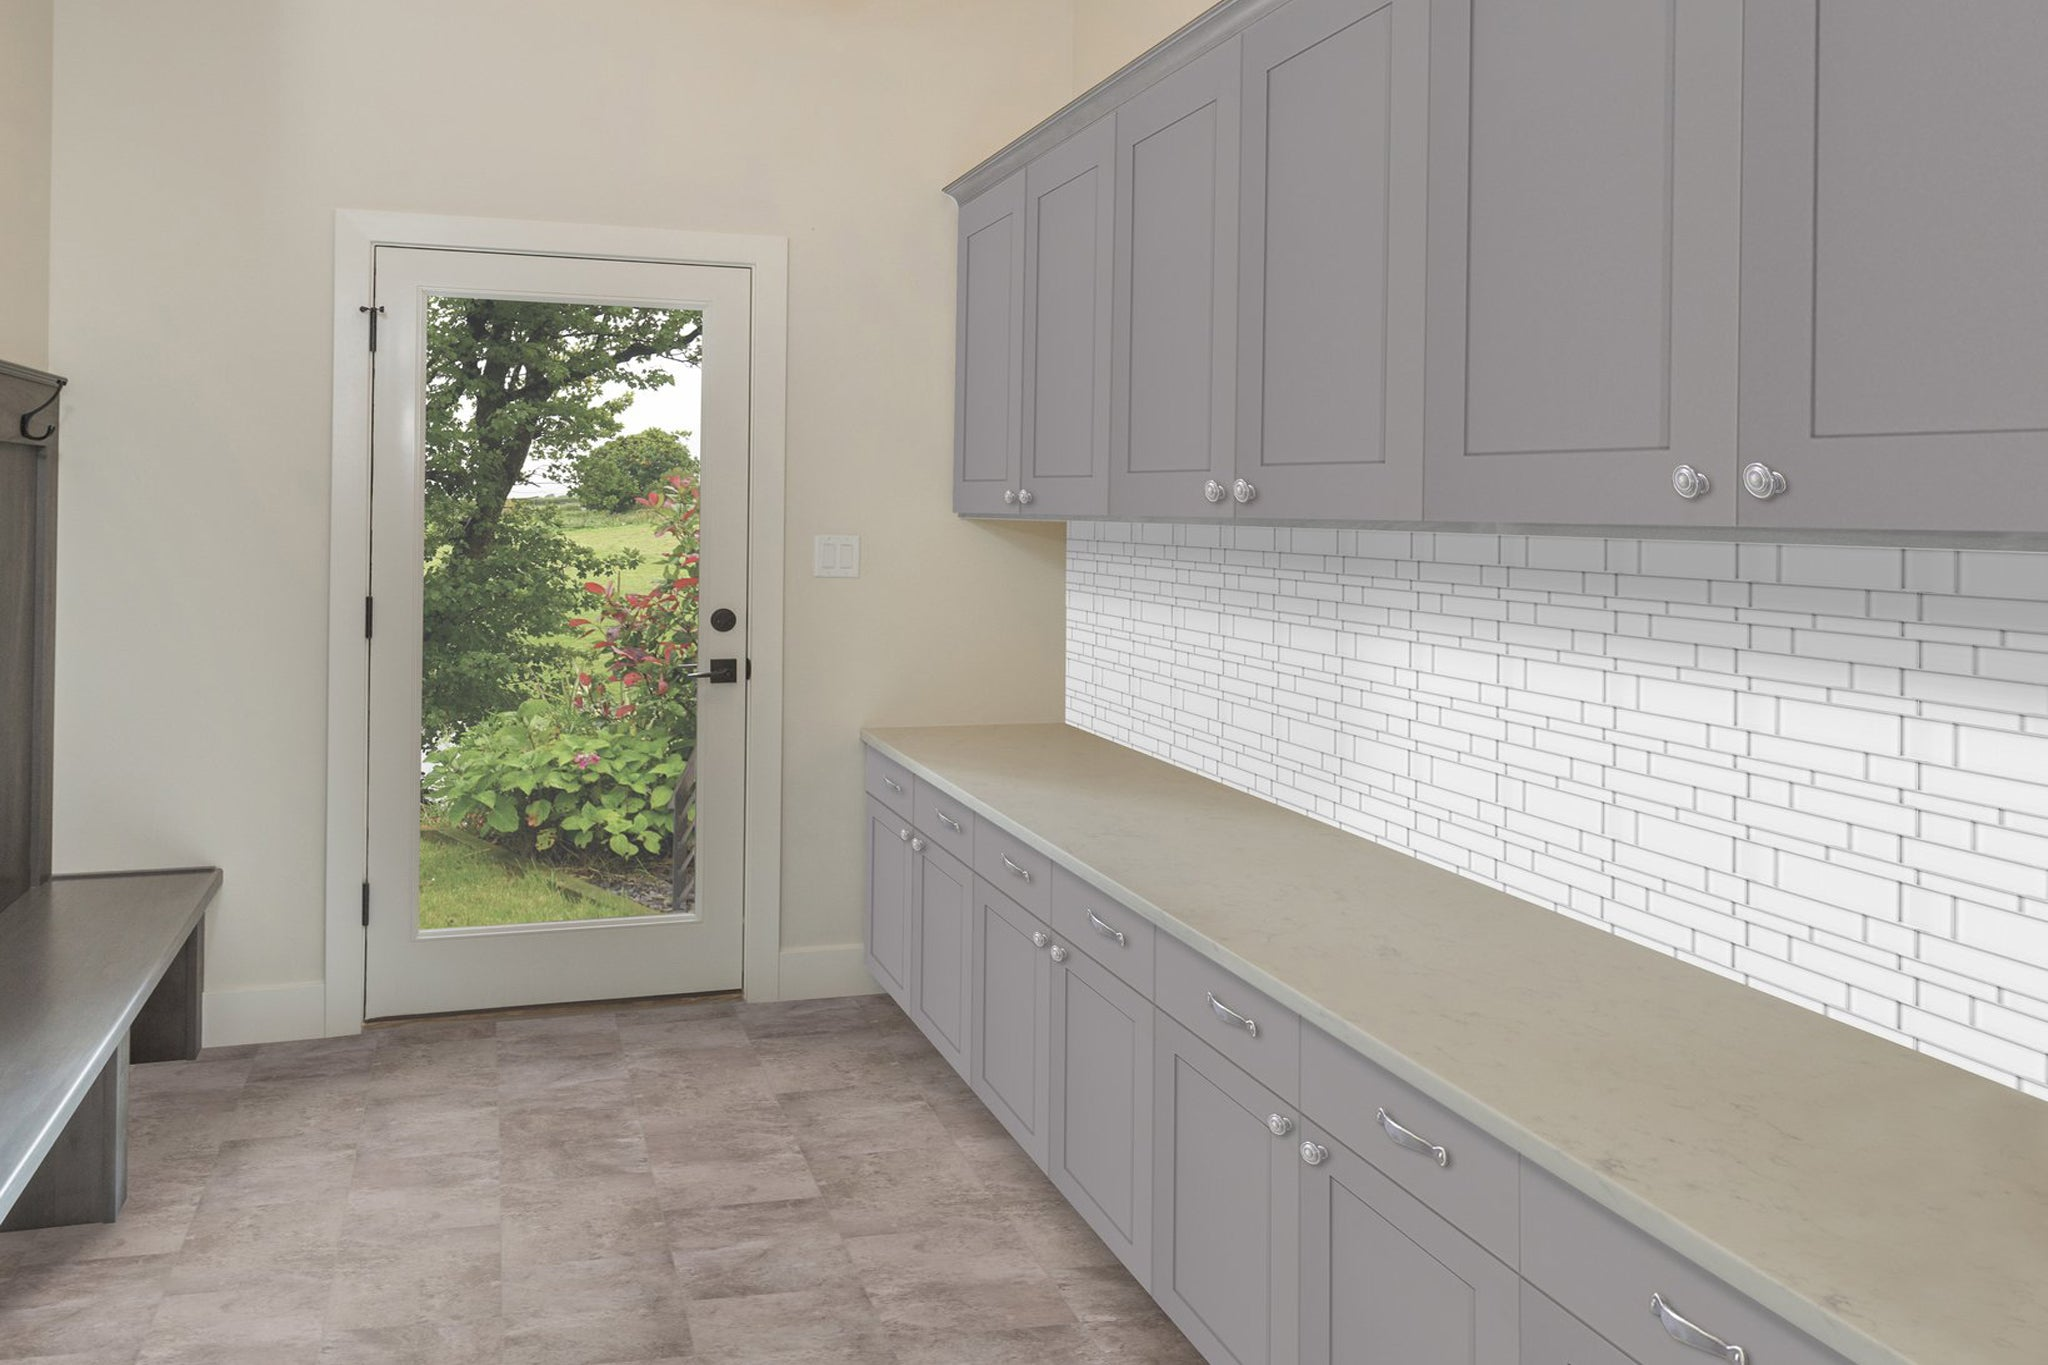 Cabinet Sample - Worthington Grey